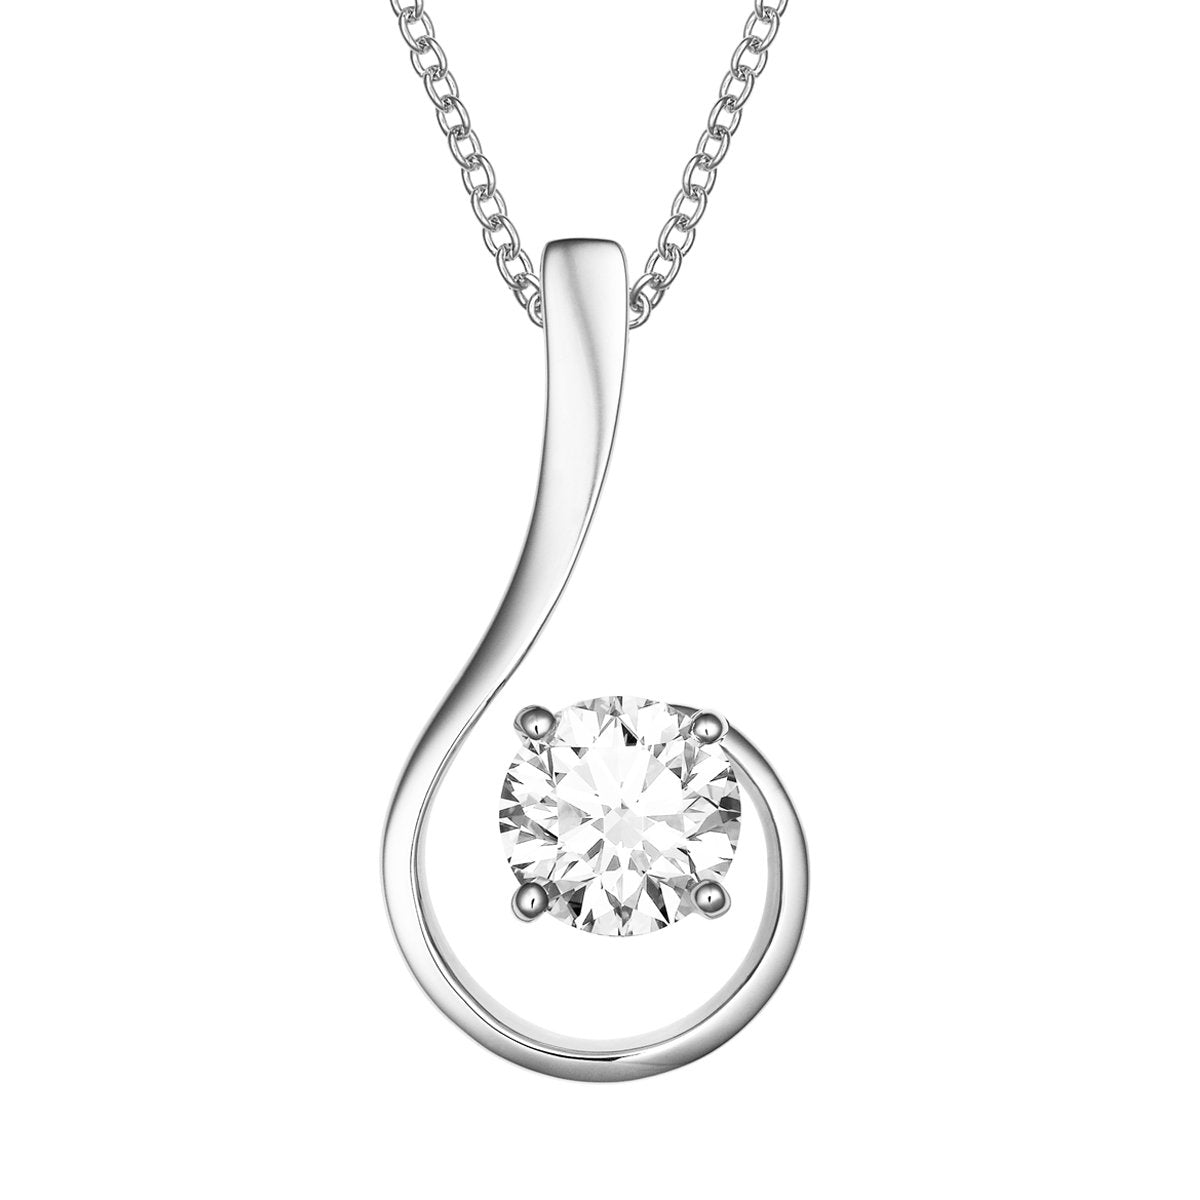 Onda diamond pendant